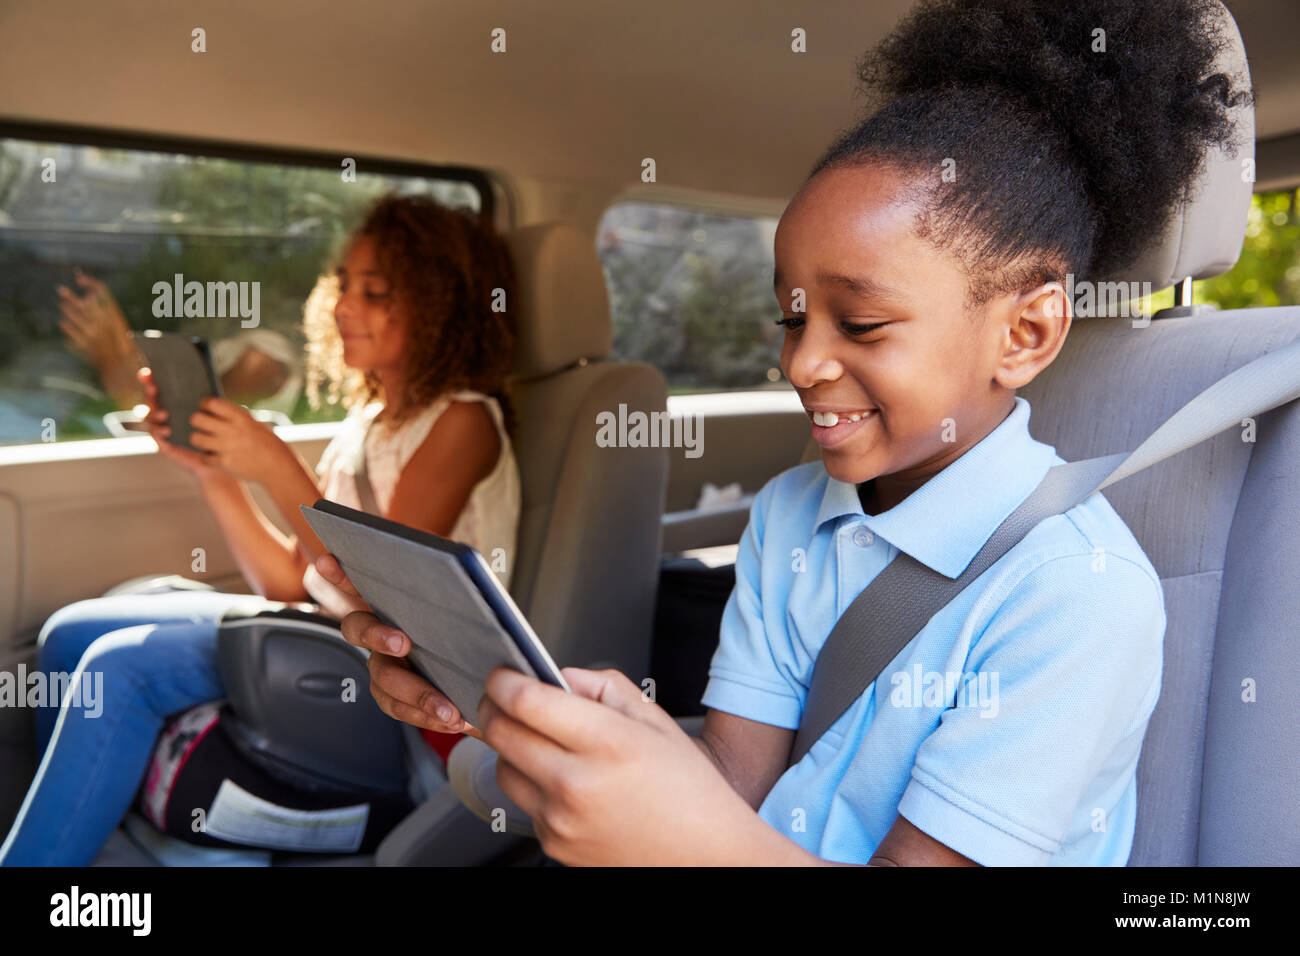 Children Using Digital Devices On Car Journey - Stock Image